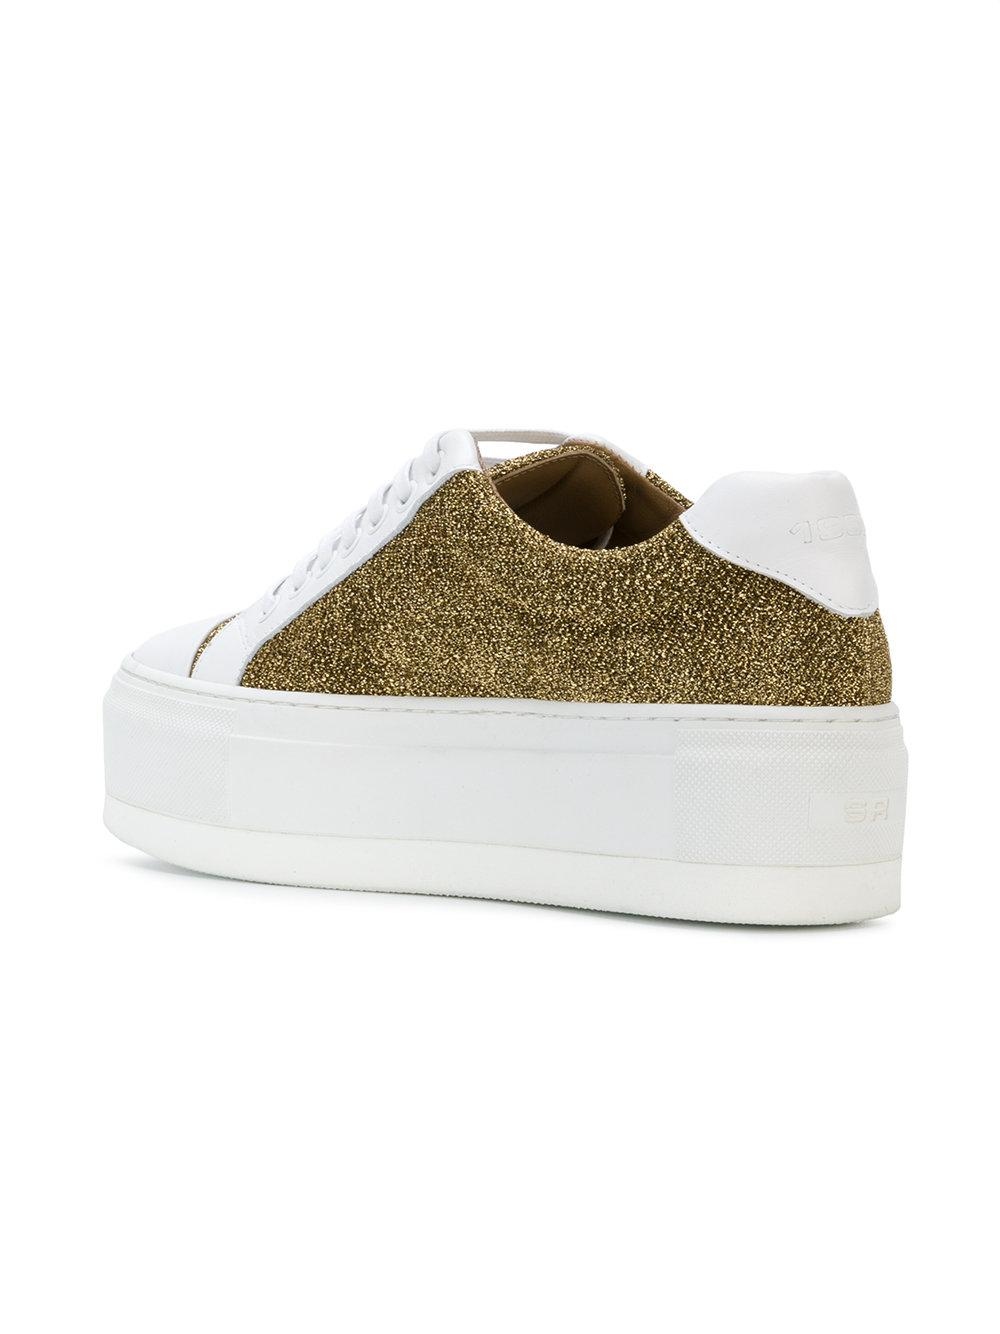 cheap sale good selling Sonia Rykiel Lurex sneakers really for sale discount websites websites cheap online footlocker finishline cheap price ZrN1EM